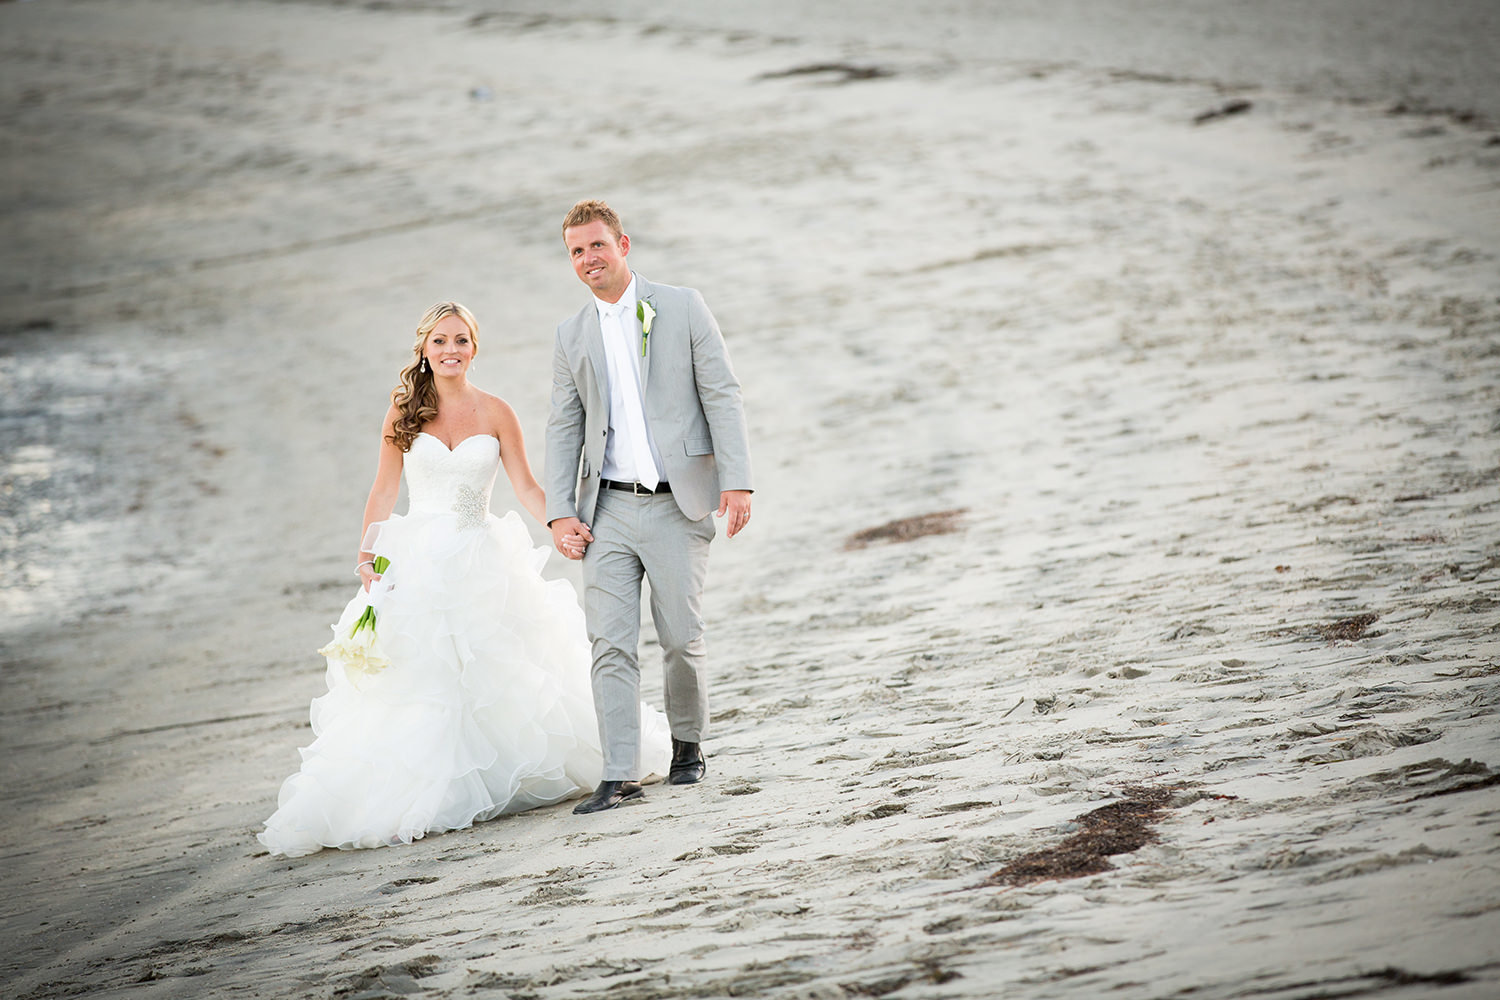 bride and groom in sand walking on beach